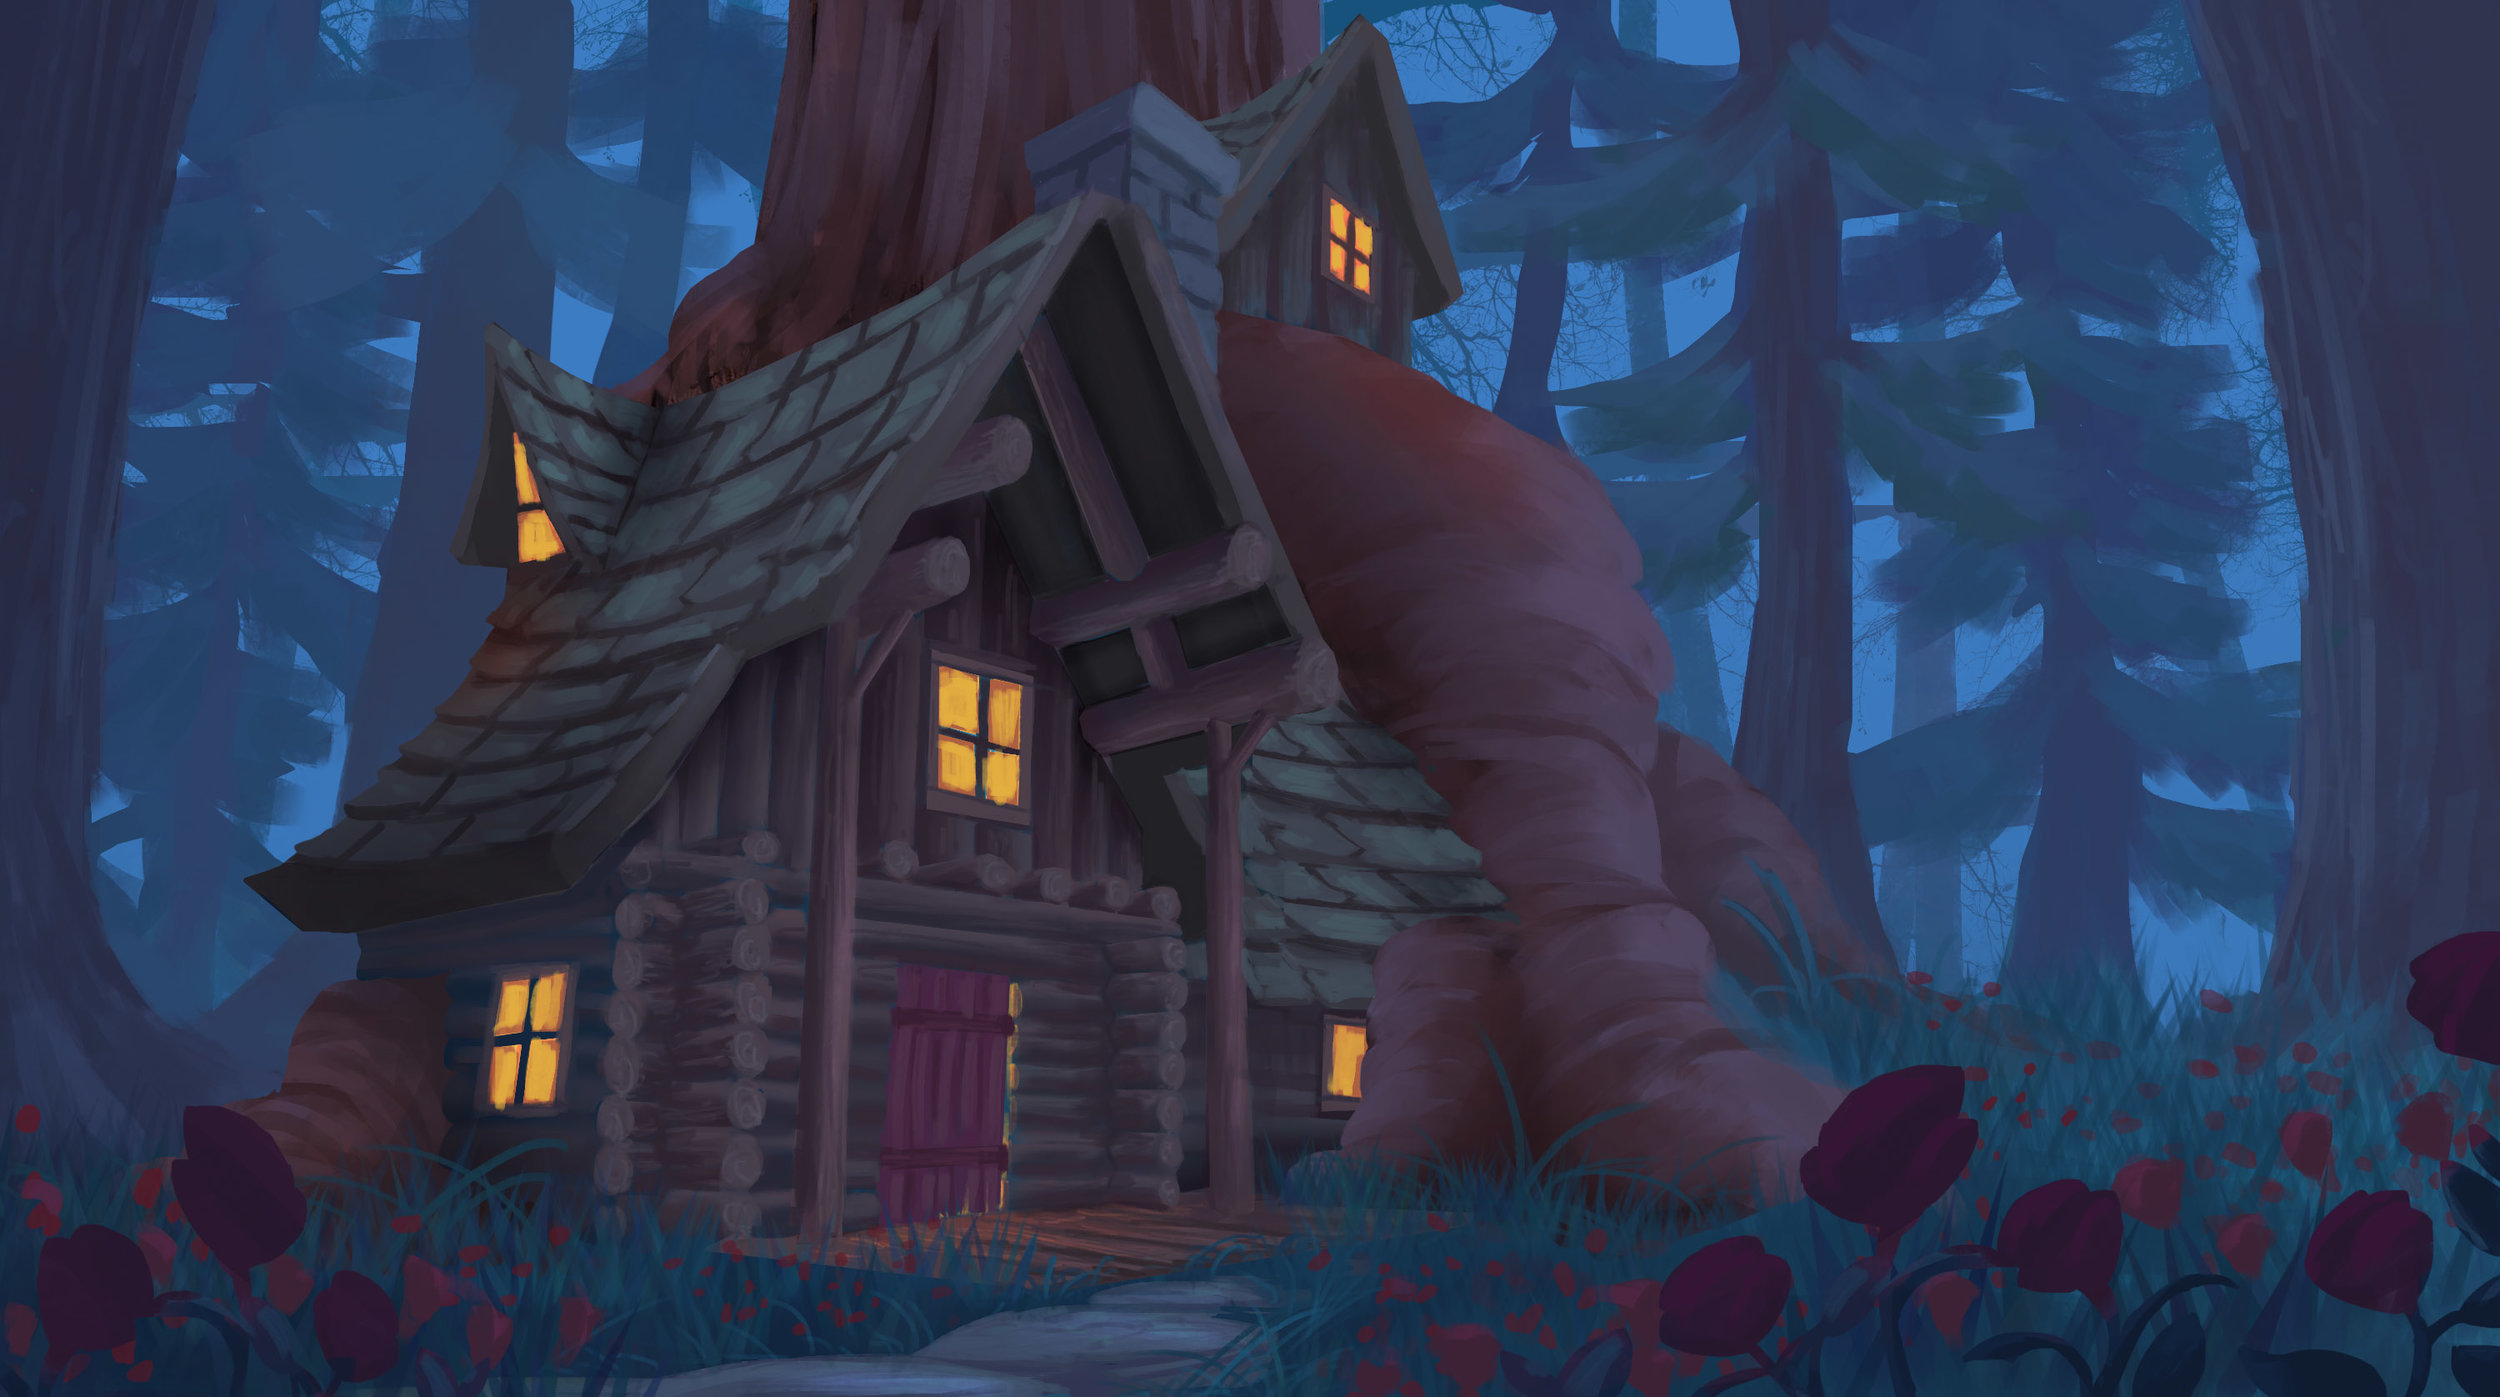 Little Haven - Episode 8: The Quest, Part 2DOLINA:   Once we get out into this field of poppies up ahead you'll be able to       see our cabin.SAM:    I've never seen flowers like thisROY:    Or a house like thatARBOR:   And this is our home.SAM:    Wow. It's incredible.What is it made out of?ARBOR:   It's all wood from the trees in this forest.SAM:    Well, it's awesome.I love how it almost blends into the woods. So        cool…DOLINA:   Thank you, we're quite proud of it. It's like our own little haven.